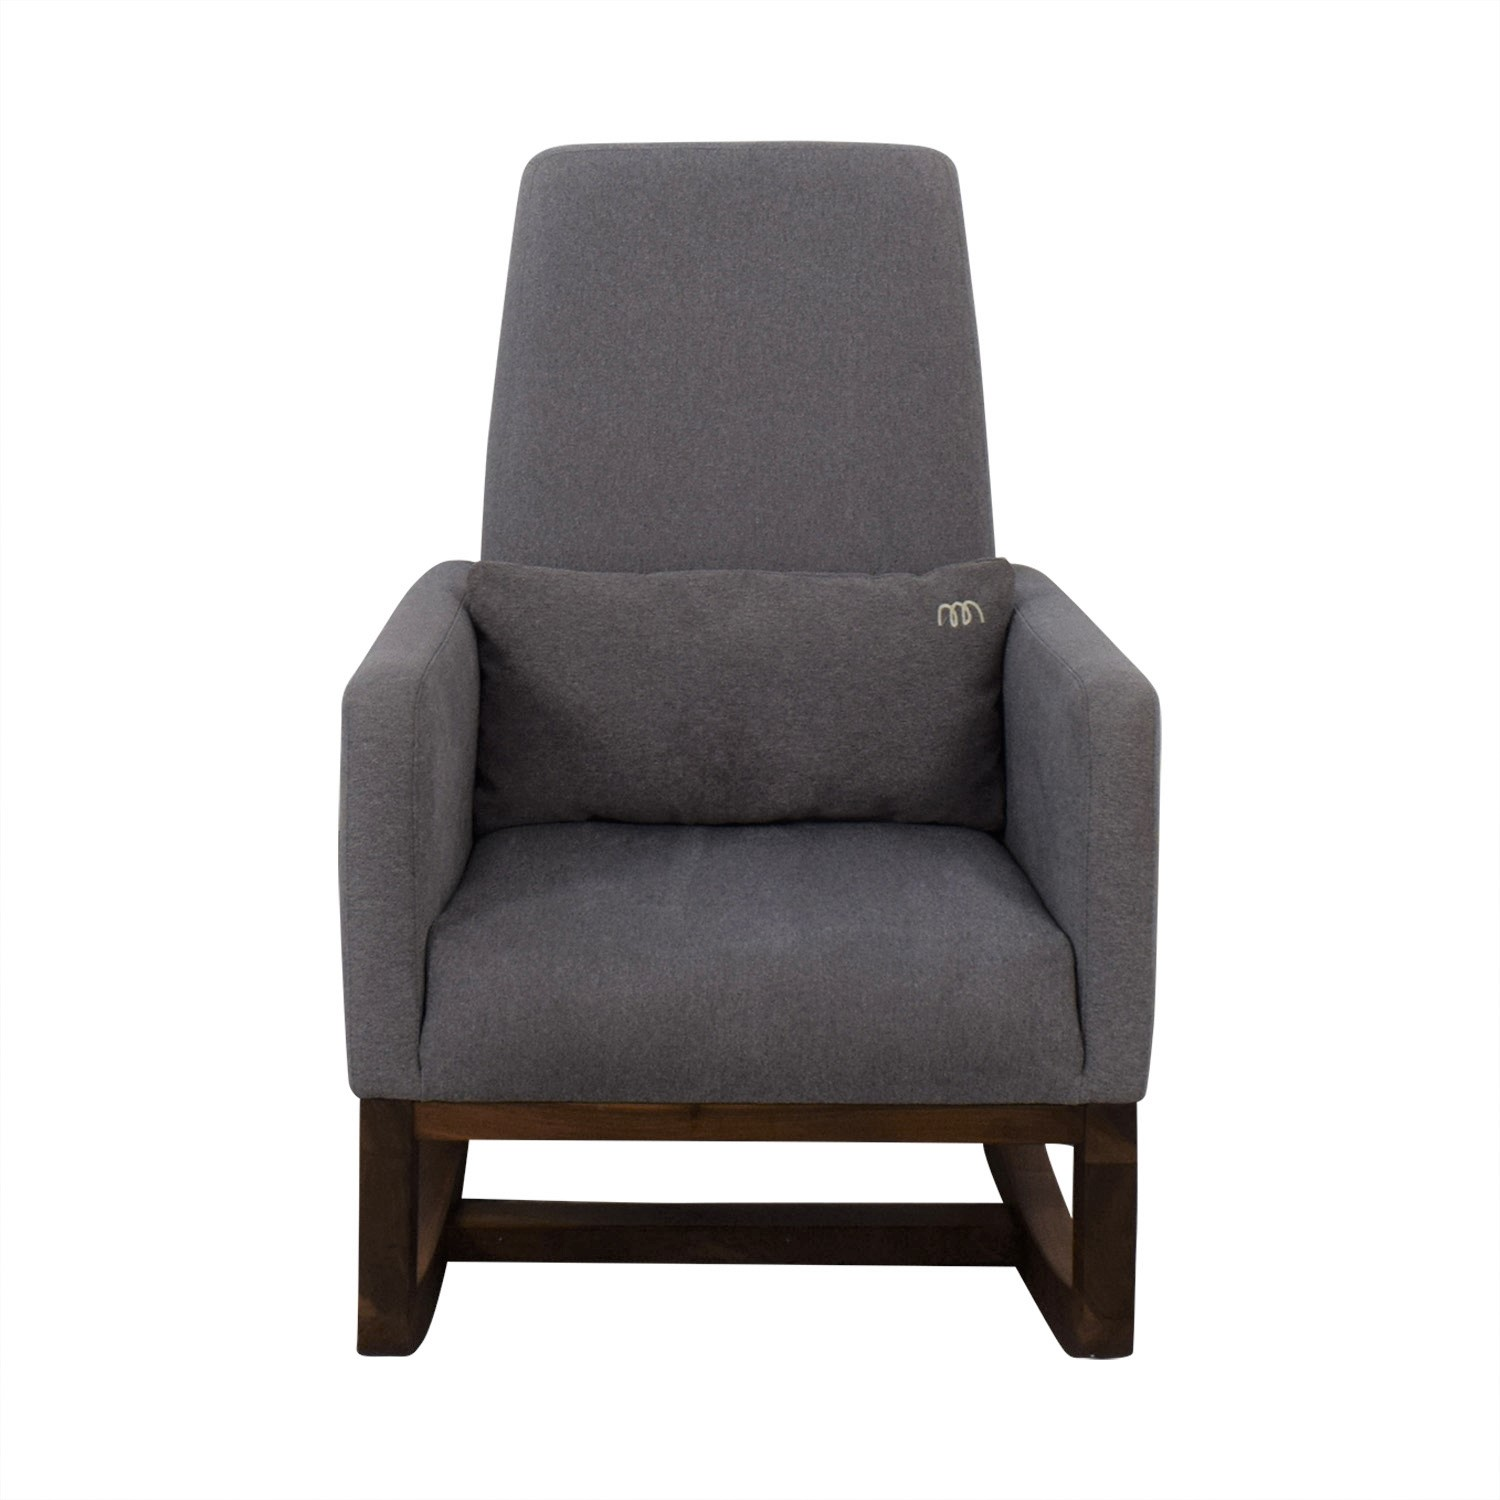 Monte Design Joya Rocker Accent Chair sale